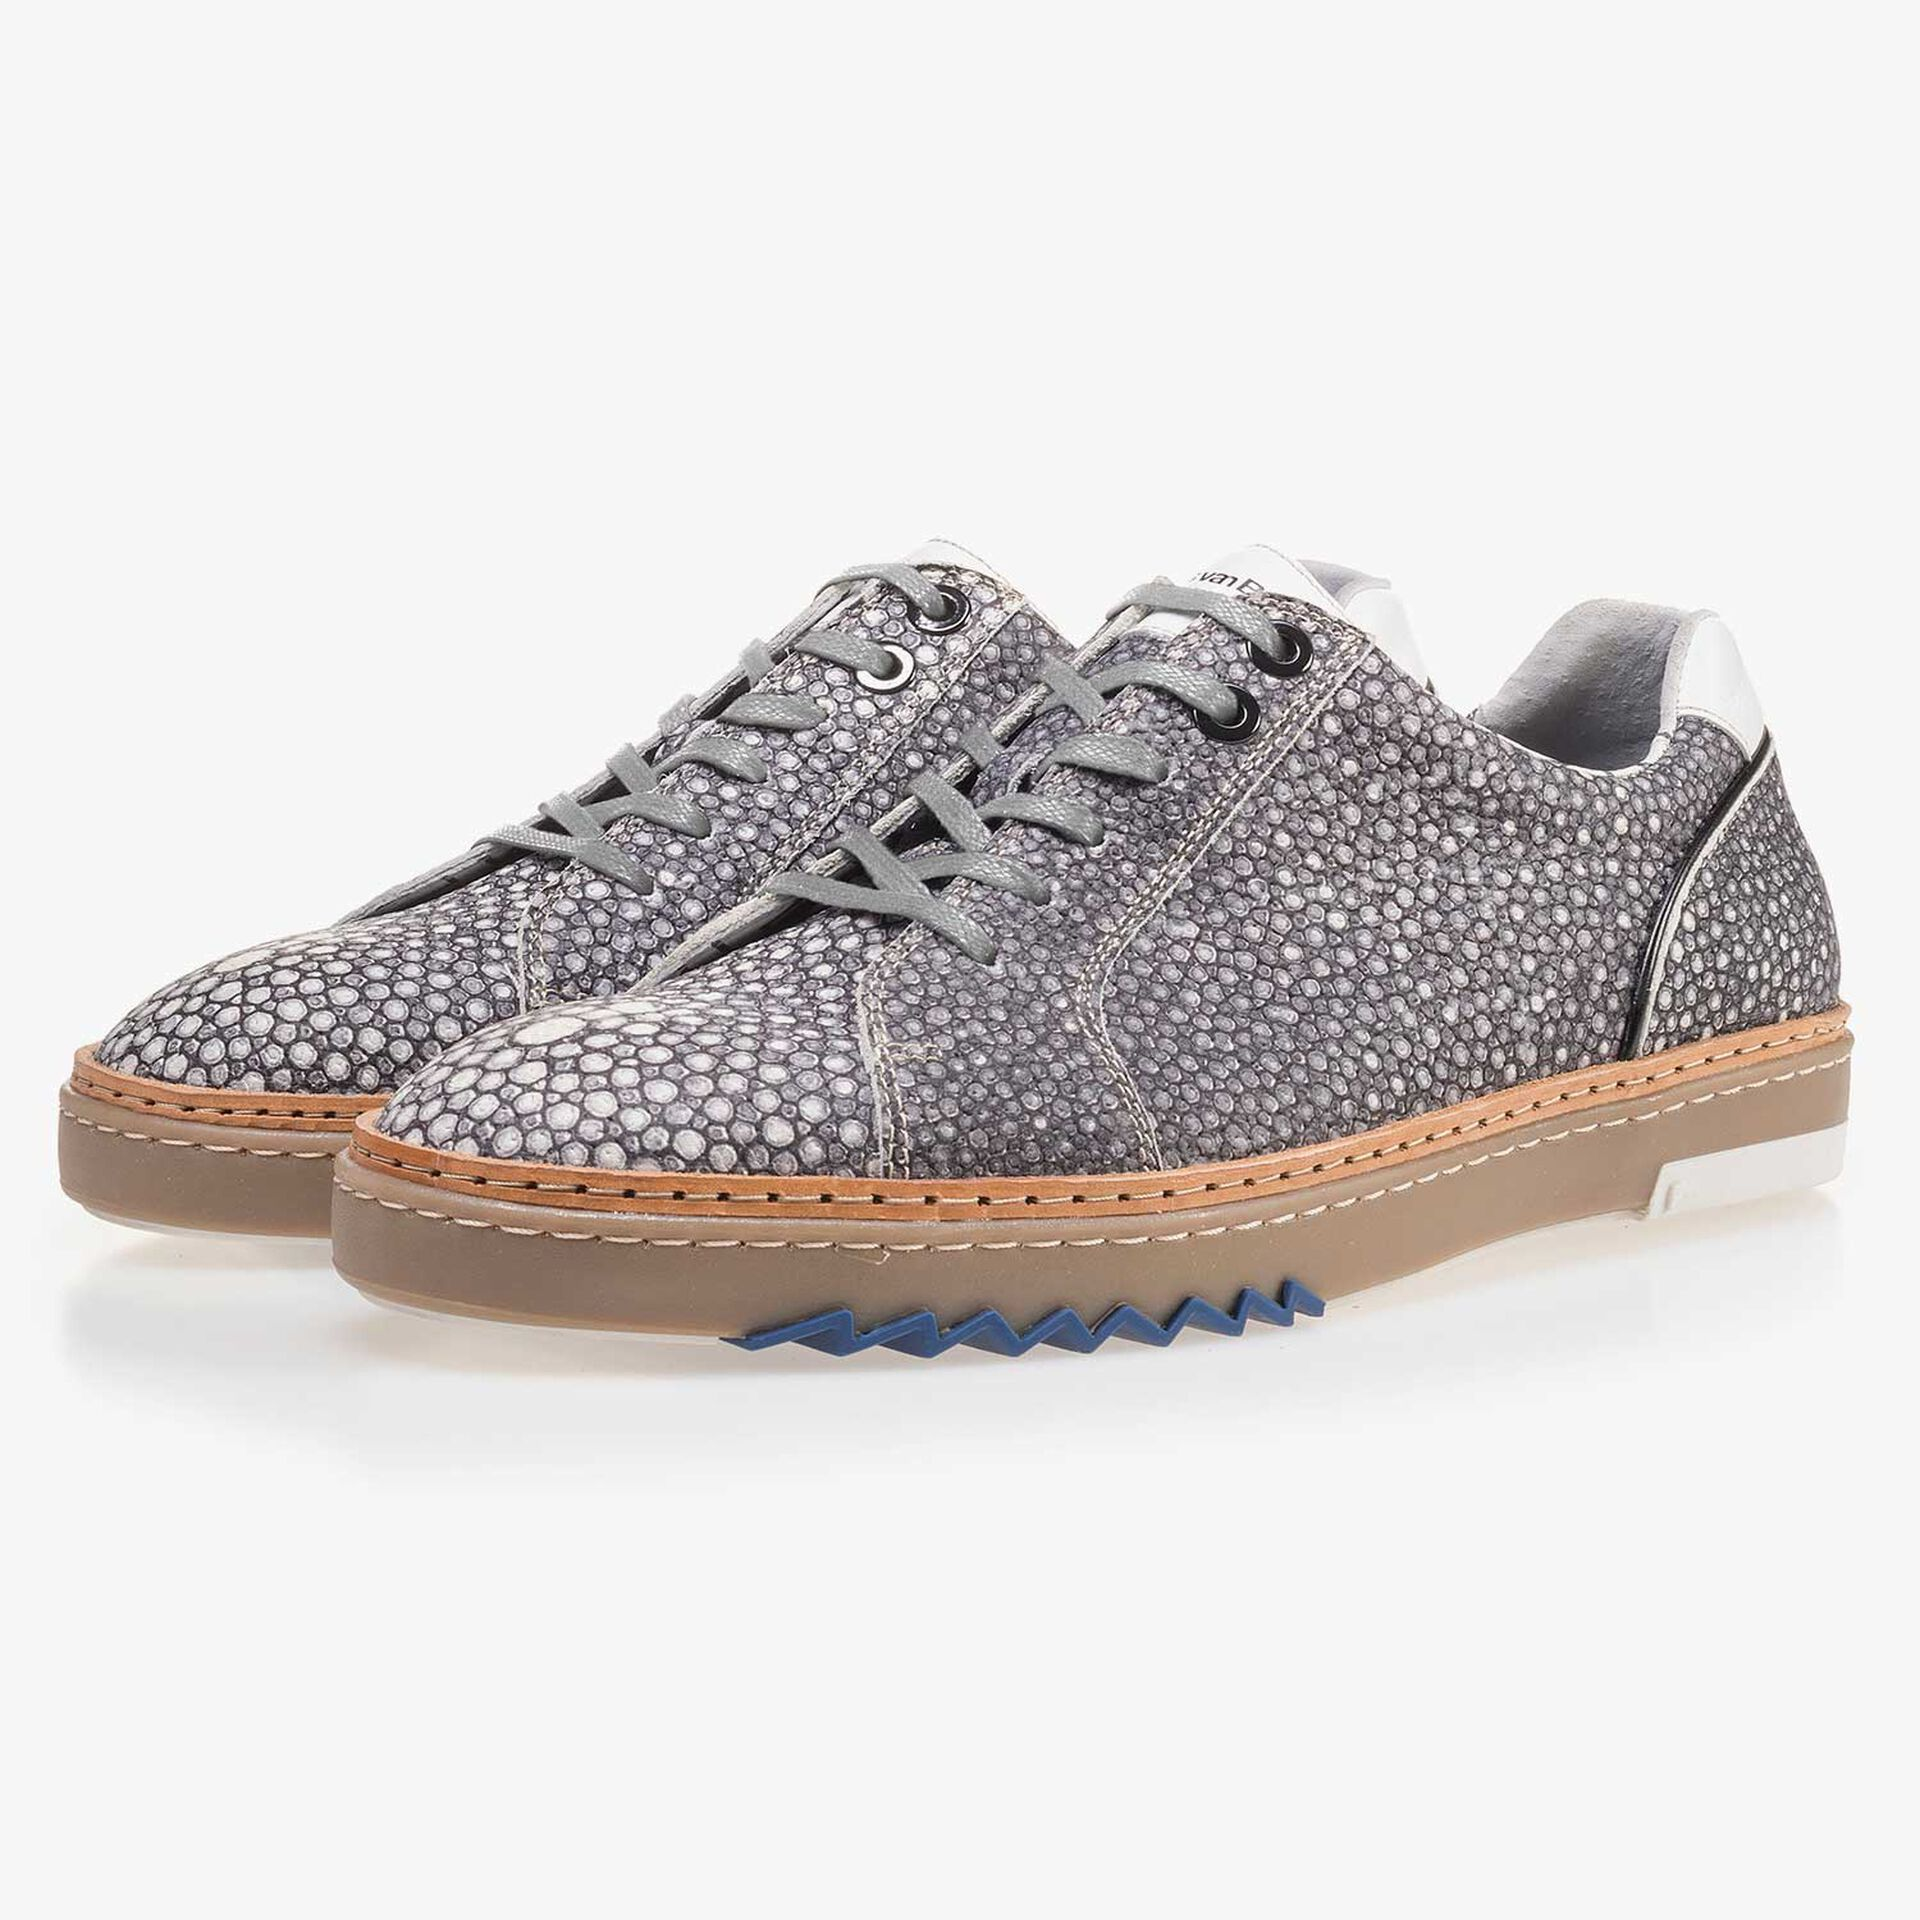 Grey, patterned leather sneaker